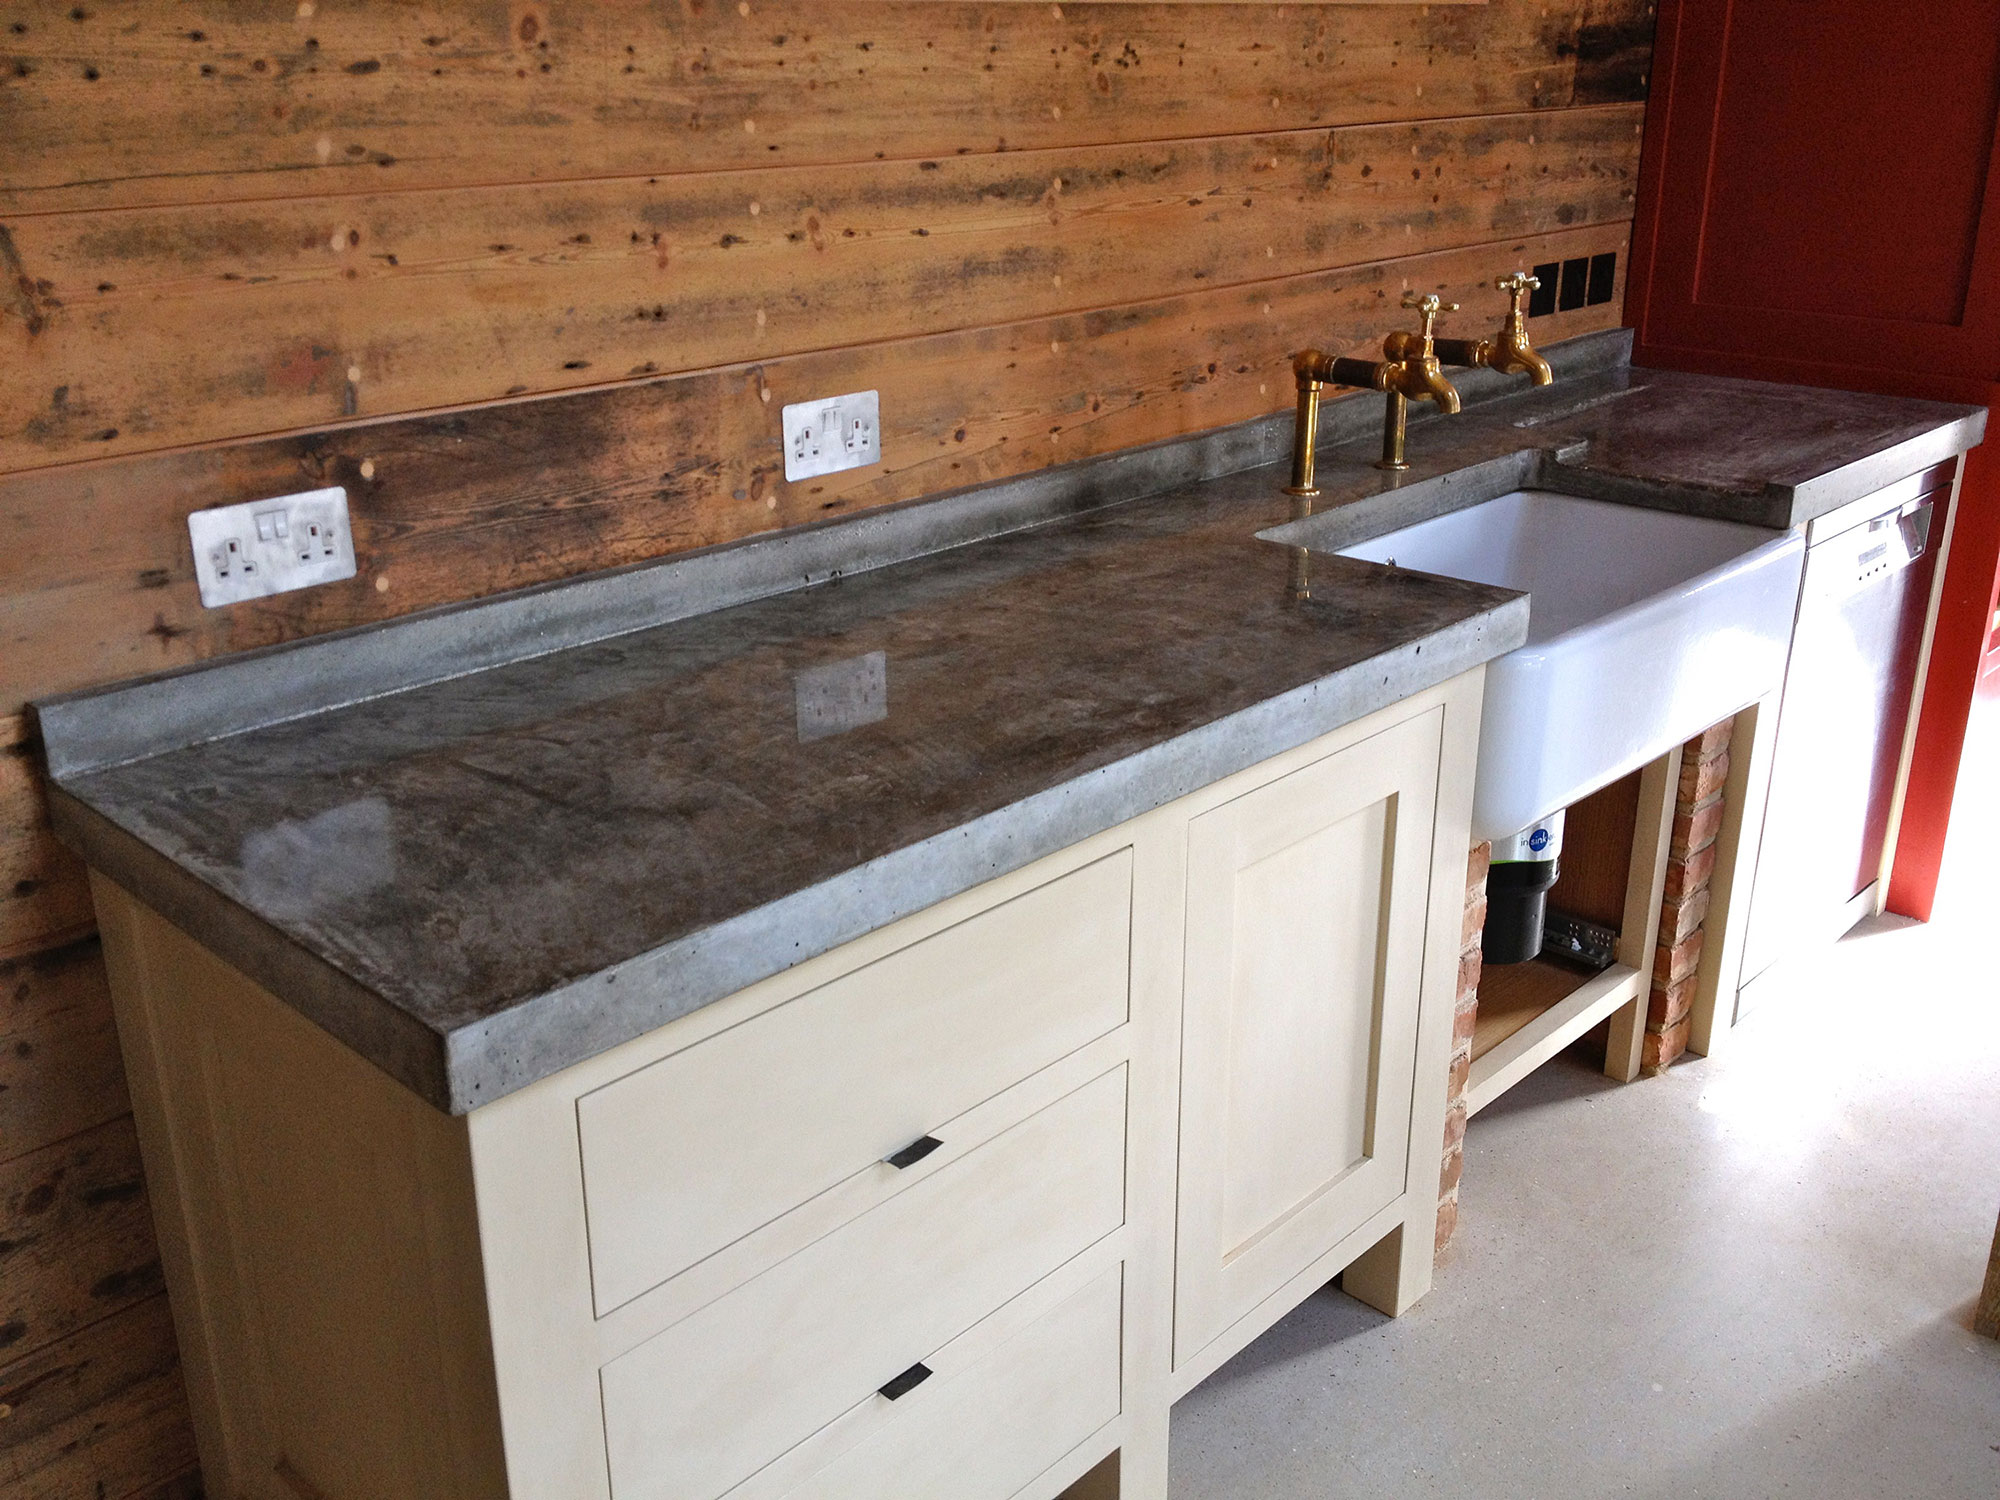 countertop home farmhouse countertops backsplast with form depot outstanding z sink concrete excellent white tiles counterform kitchen forms cabinet